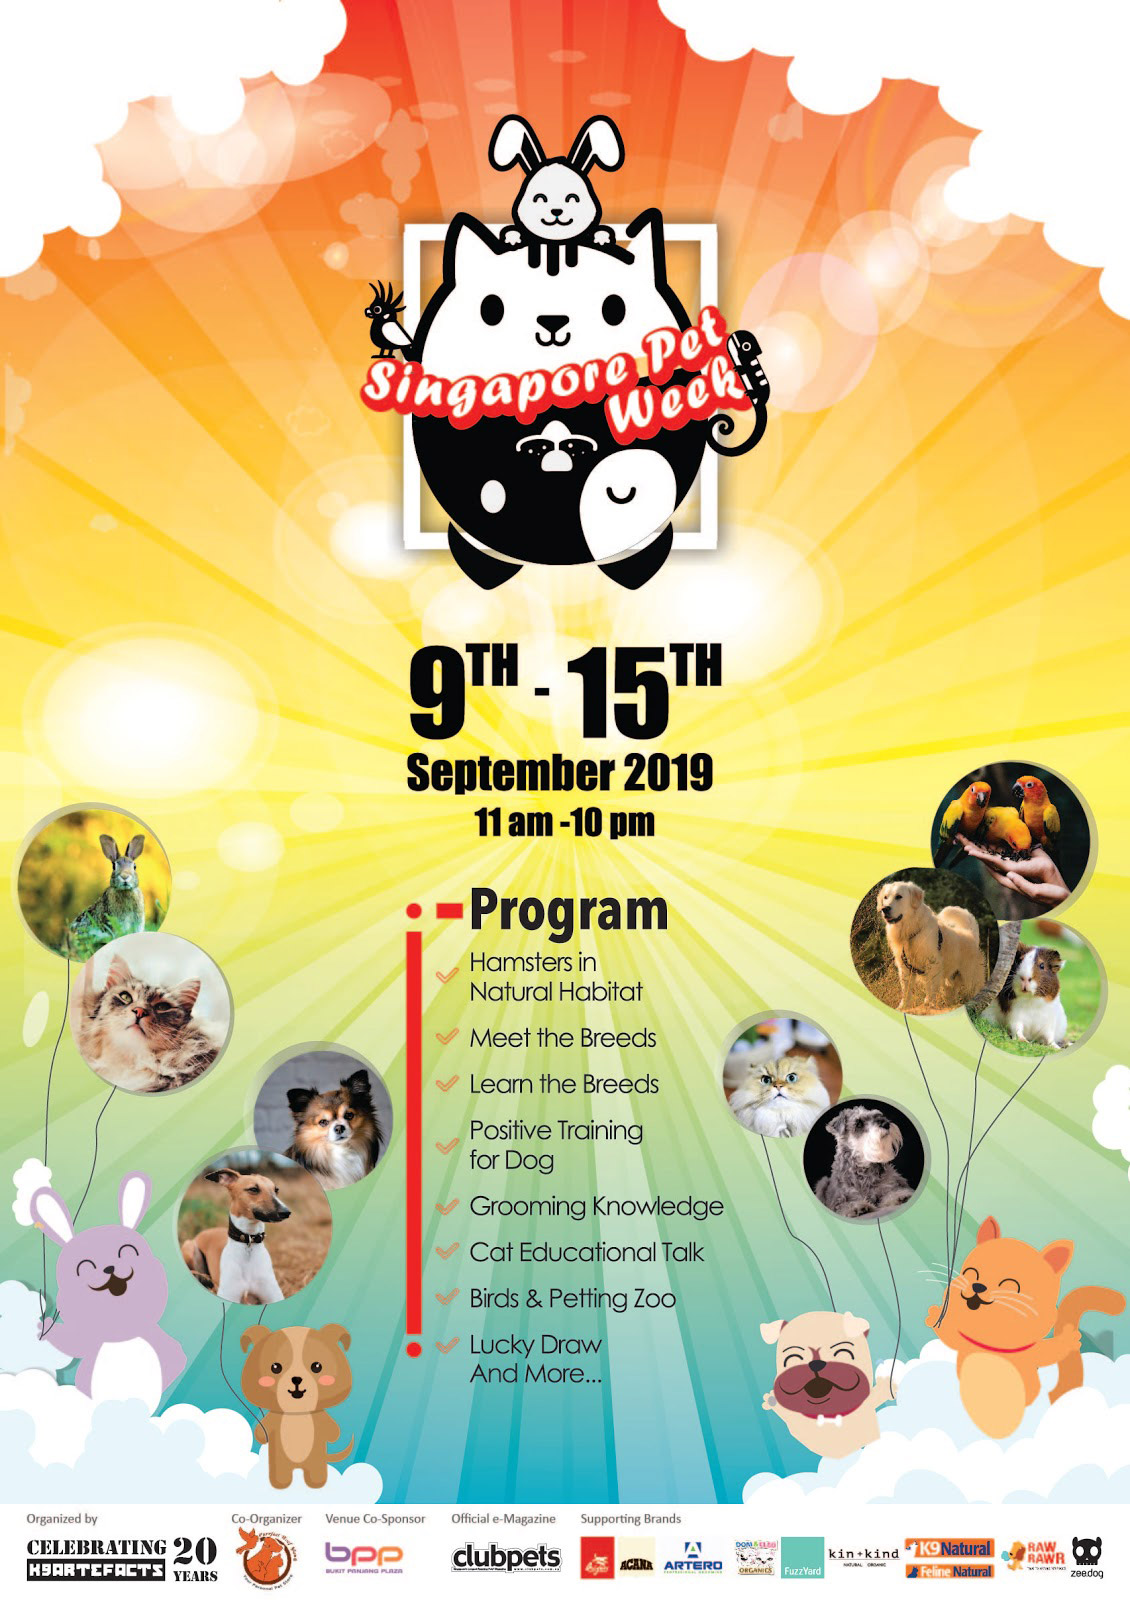 Win Prizes, Meet Furry Friends & Learn About Dog Breeds at Singapore Pet Week 2019!